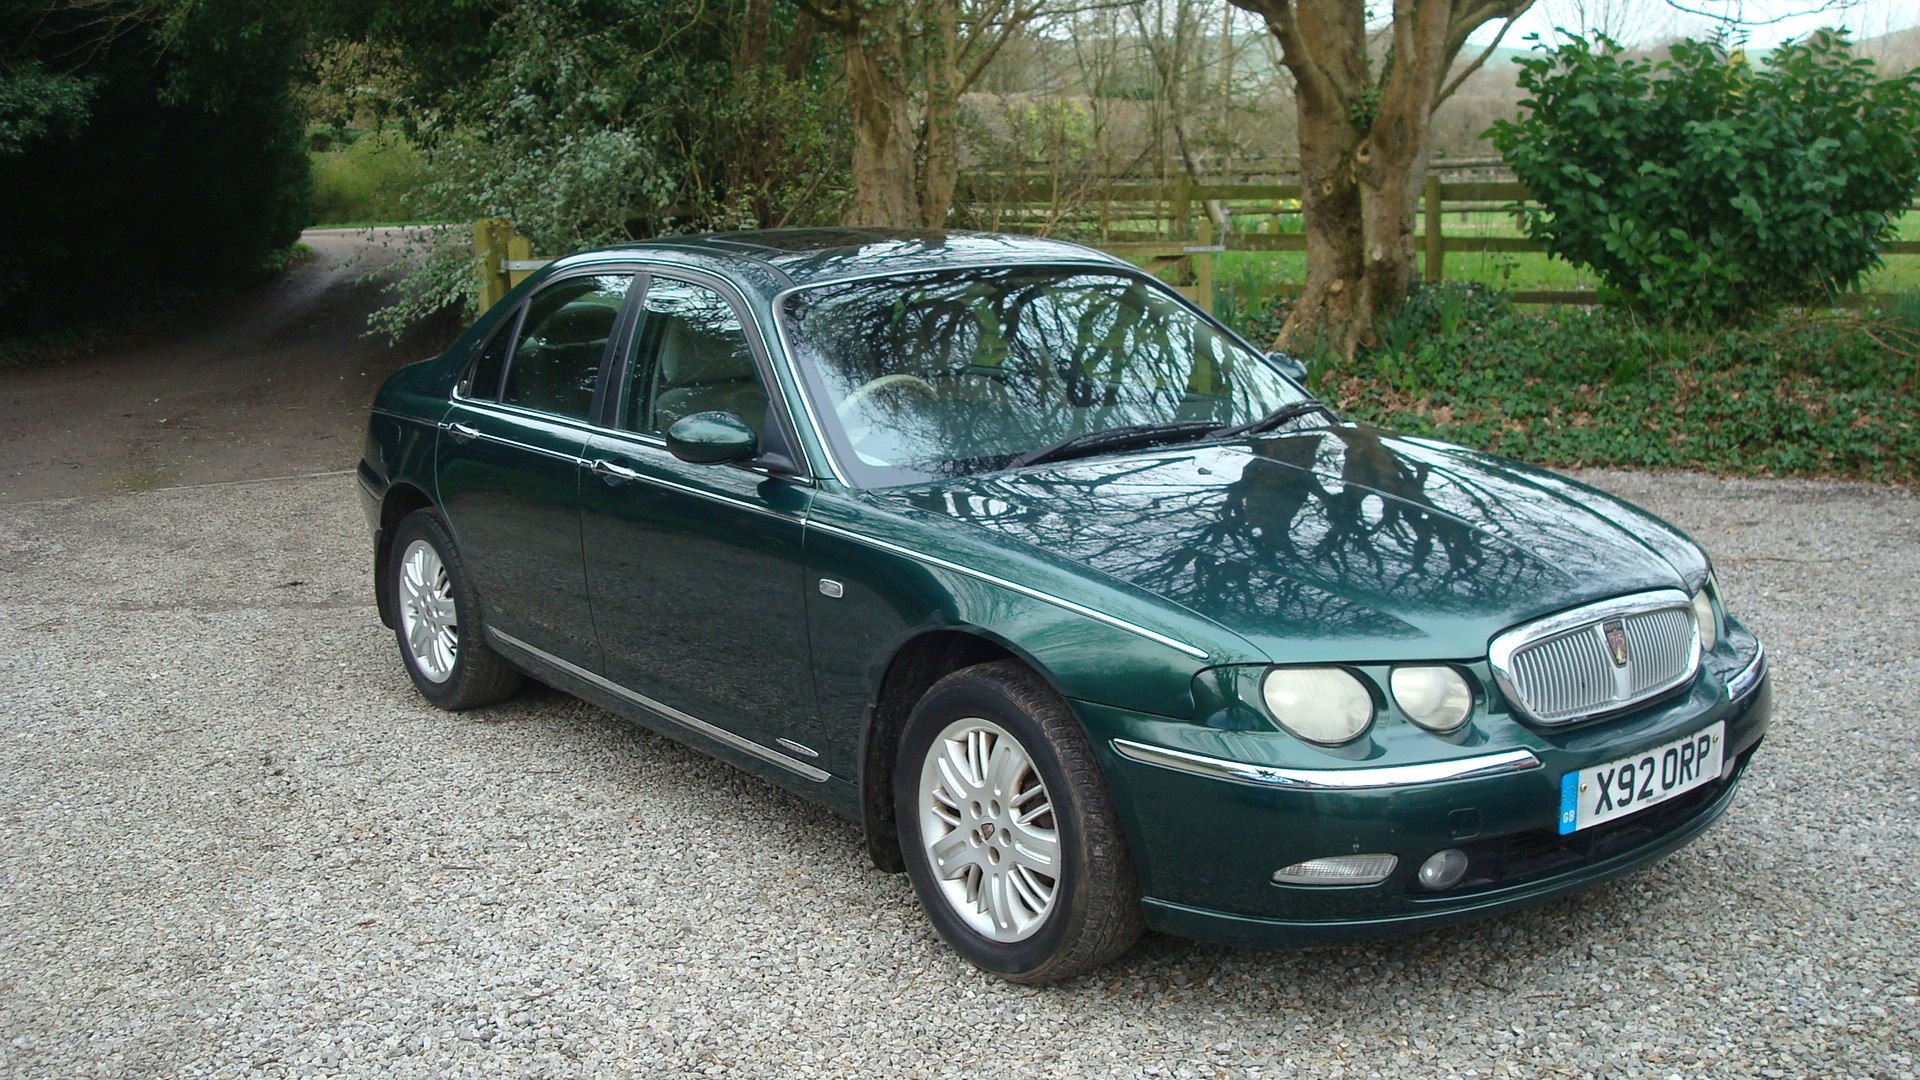 What Car Battery For A Rover Mg Zt